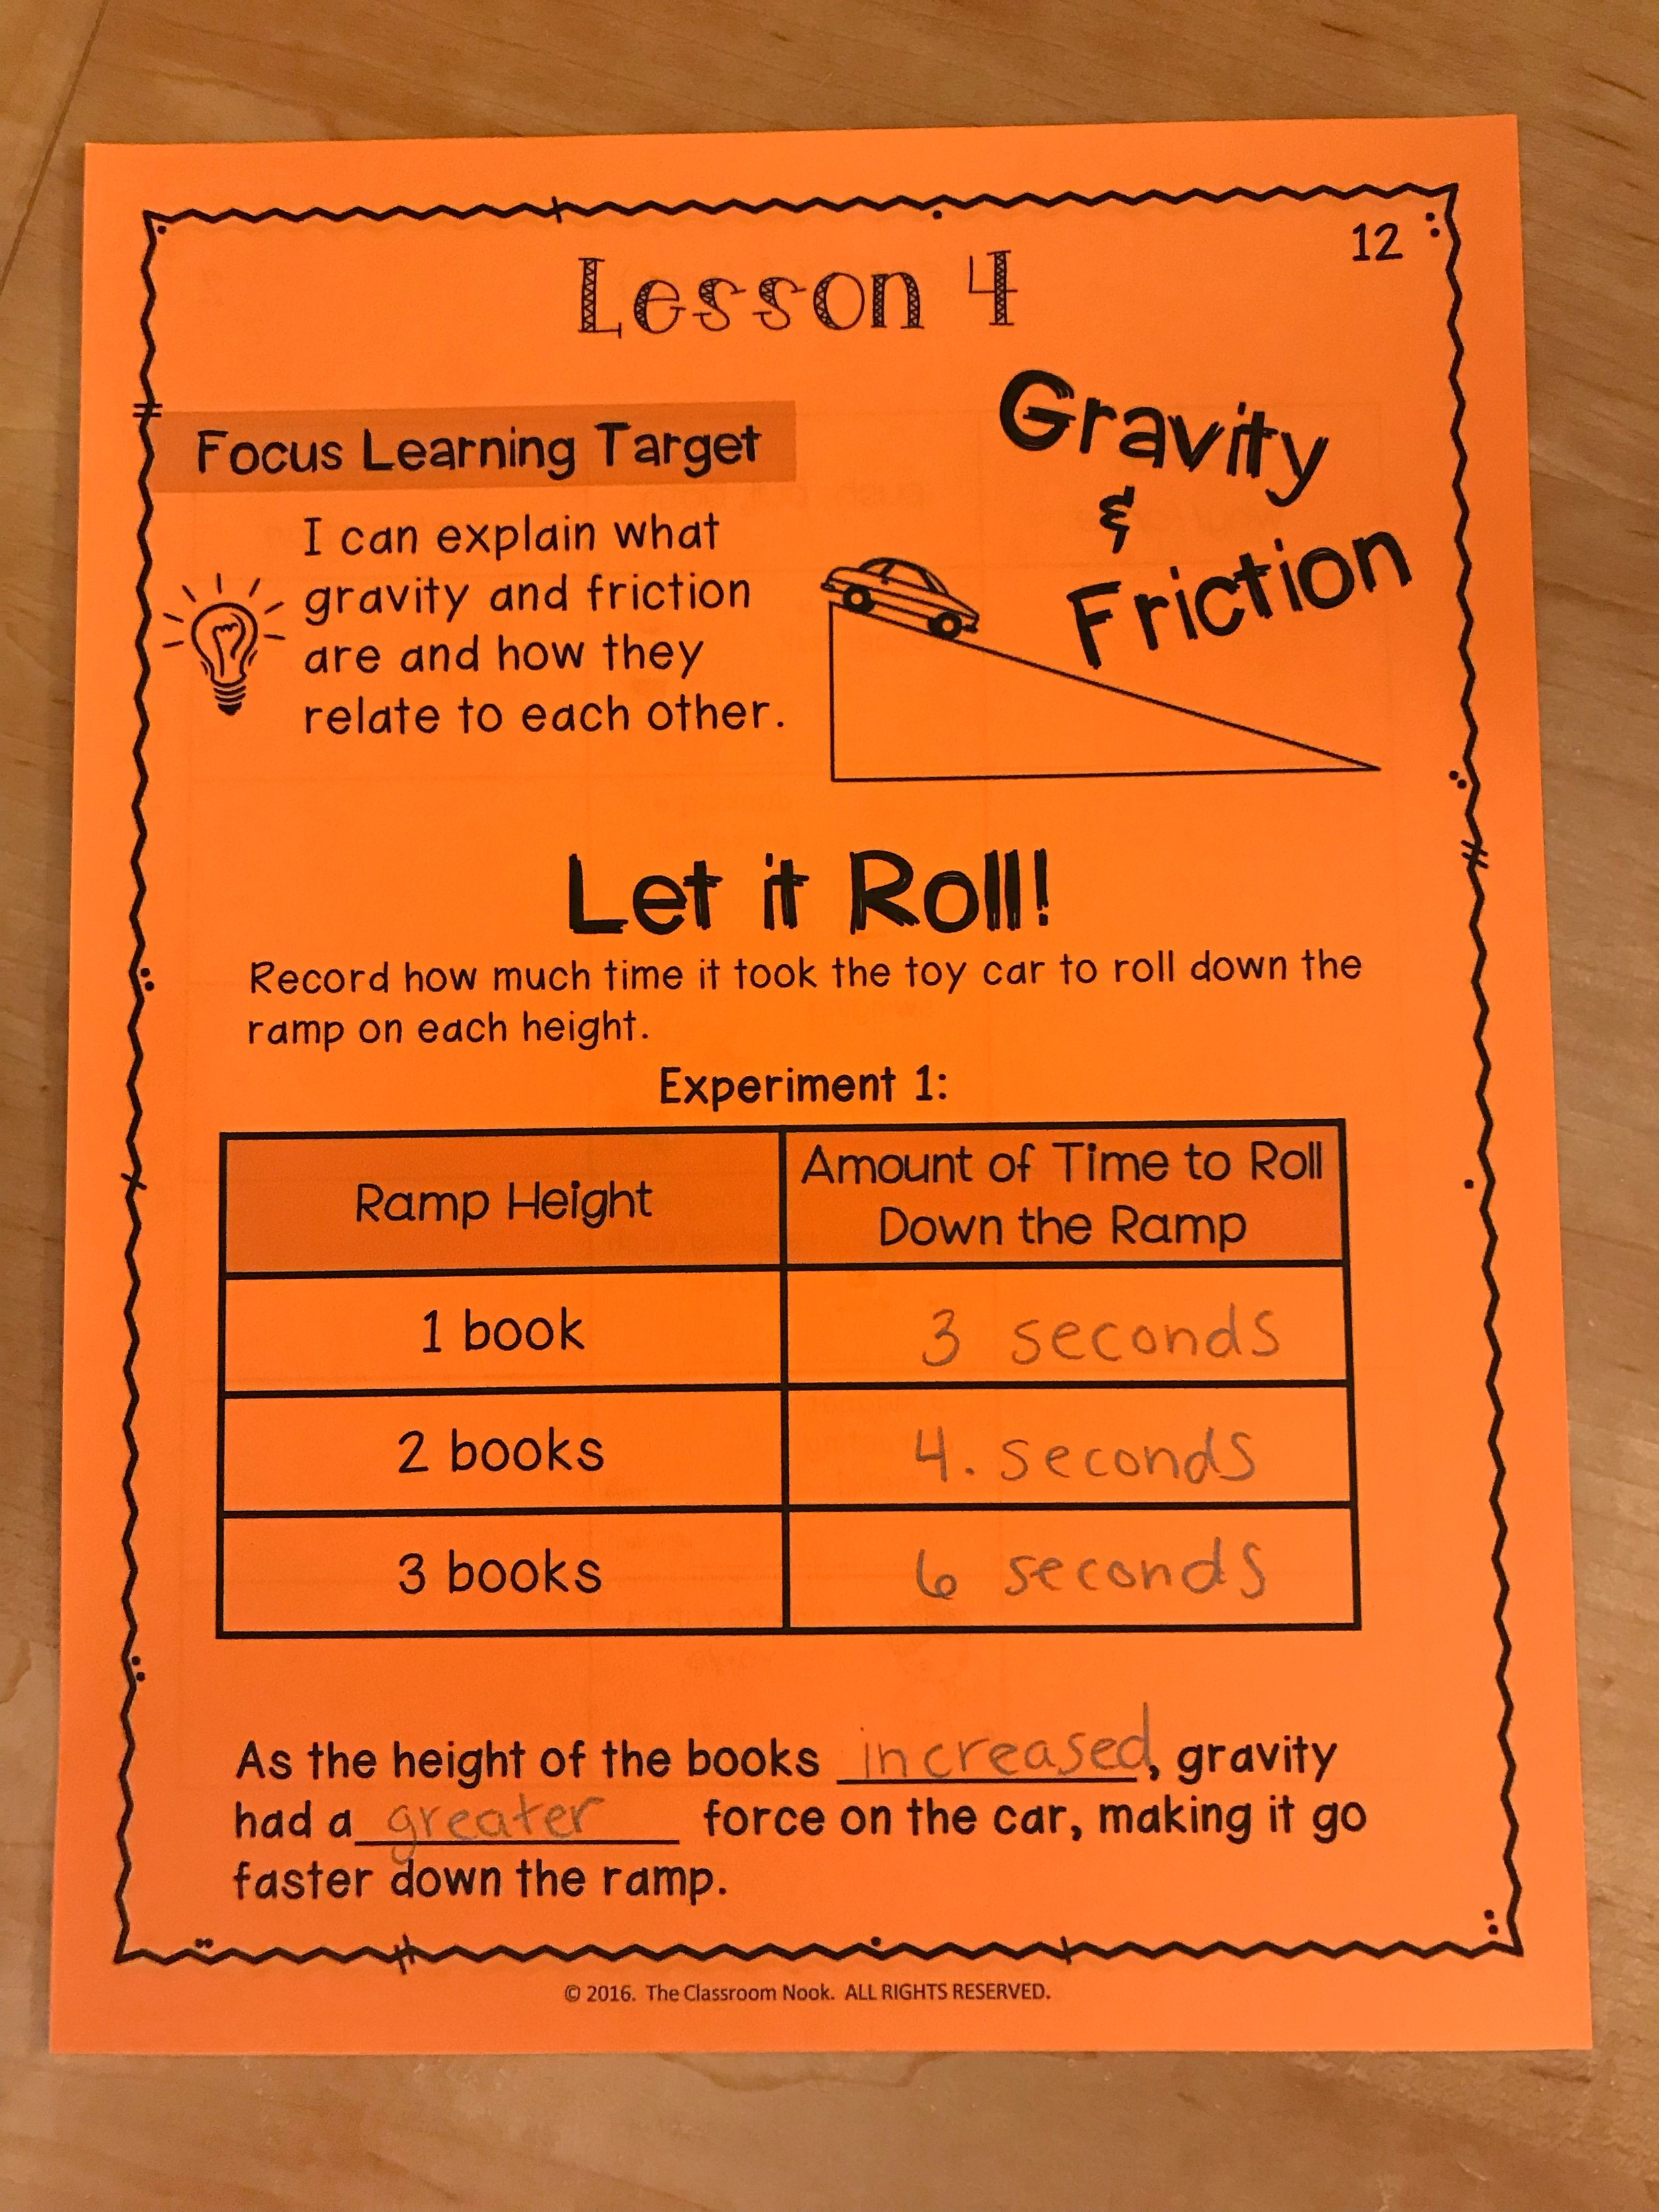 Students can test how changing the height of the ramp causes the toy car to go faster by timing how long it takes the car to get down the ramp. This illustrates that the pulling force of gravity grows stronger as the ramp gets steeper.